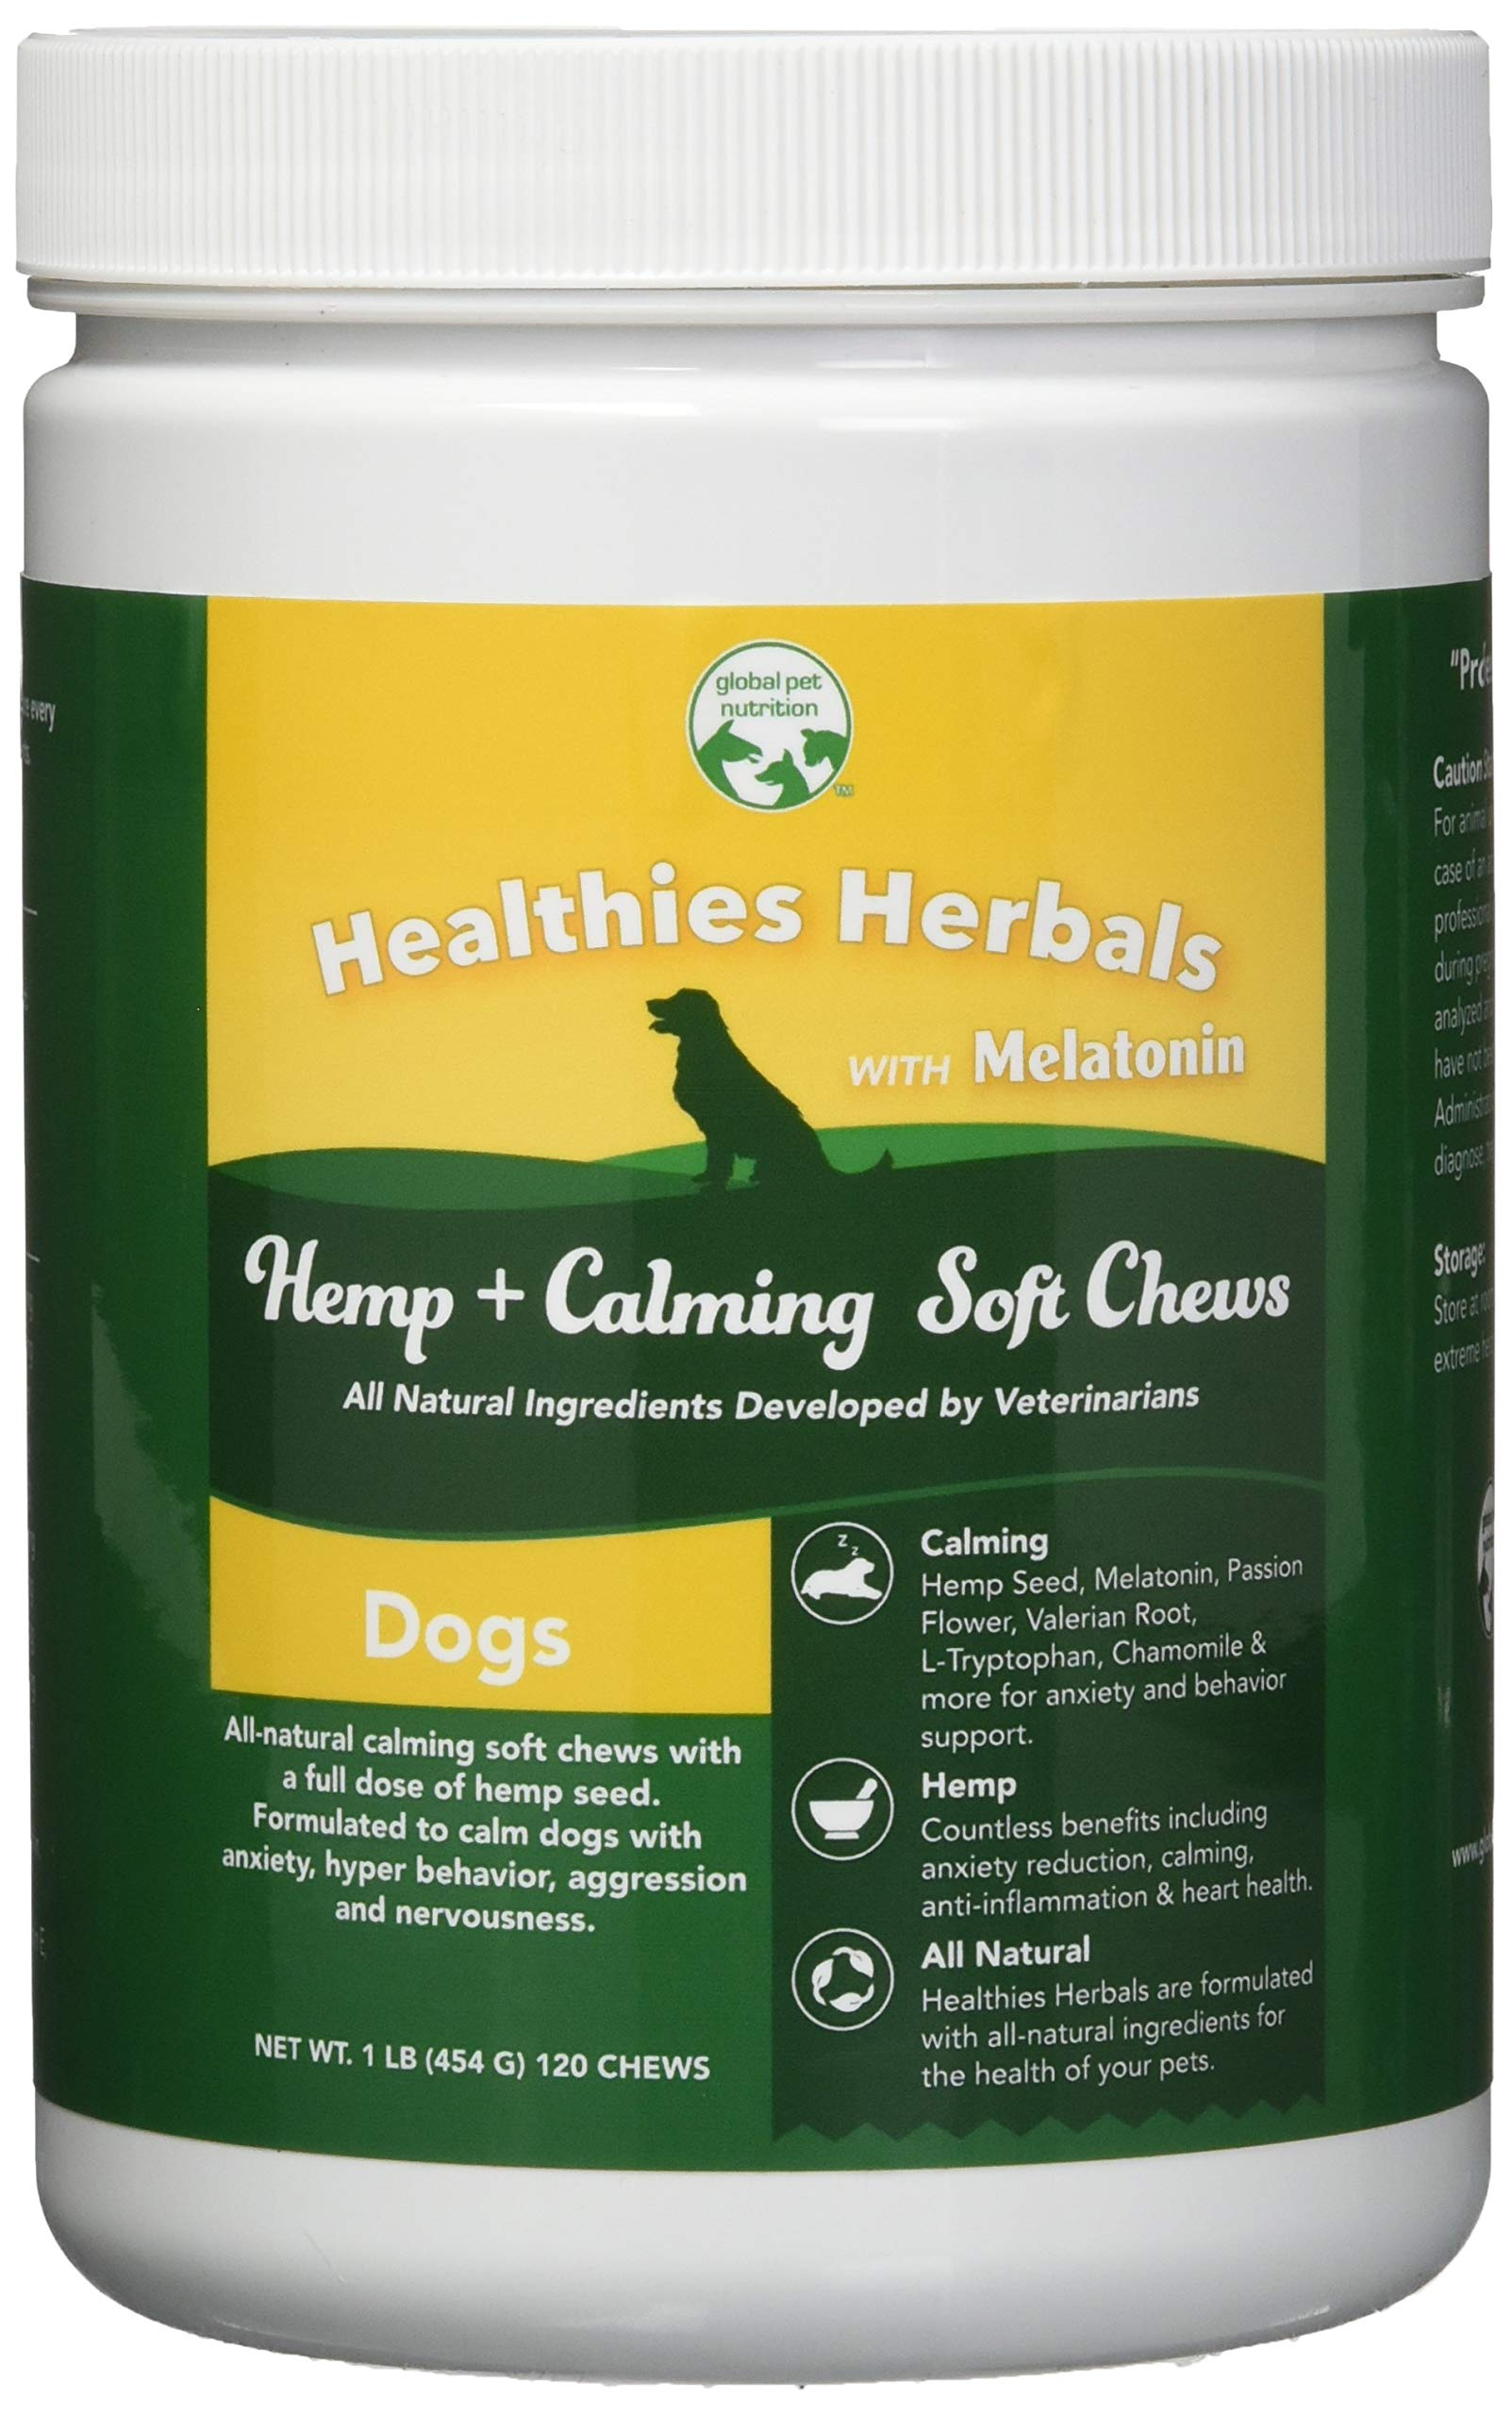 Global Pet Nutrition All-Natural Calming Soft Chews with Full Dose of Hemp Powder & Hemp Oil + Full Dose of Calming Matrix | Anxiety, Barking, Stress & Hyperactivity Relief | 120 Chews Great Value by Global Pet (Image #1)